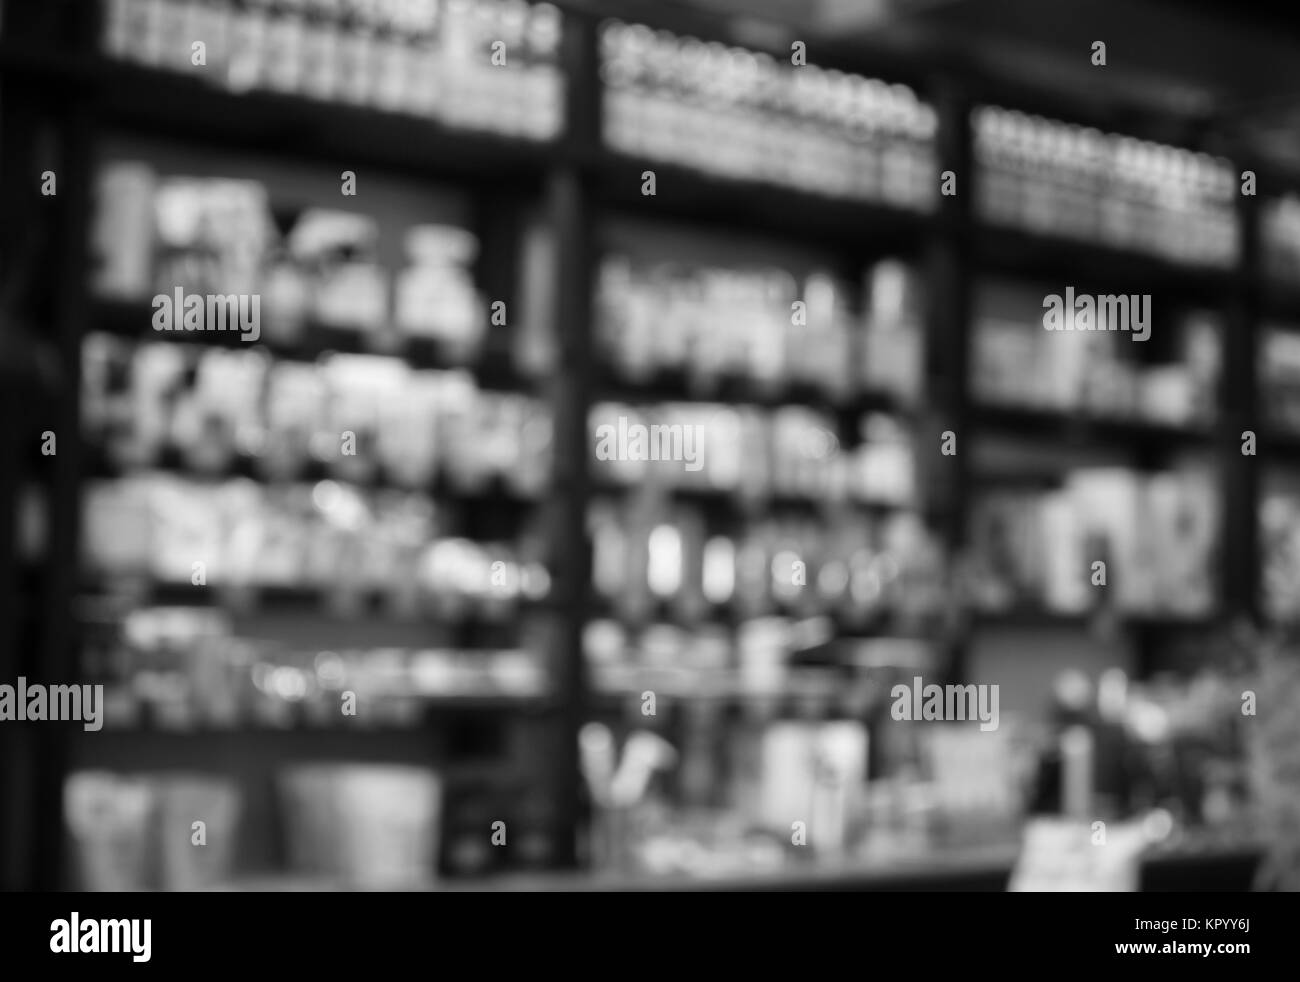 Cafe blurred background with black and white tone - Stock Image